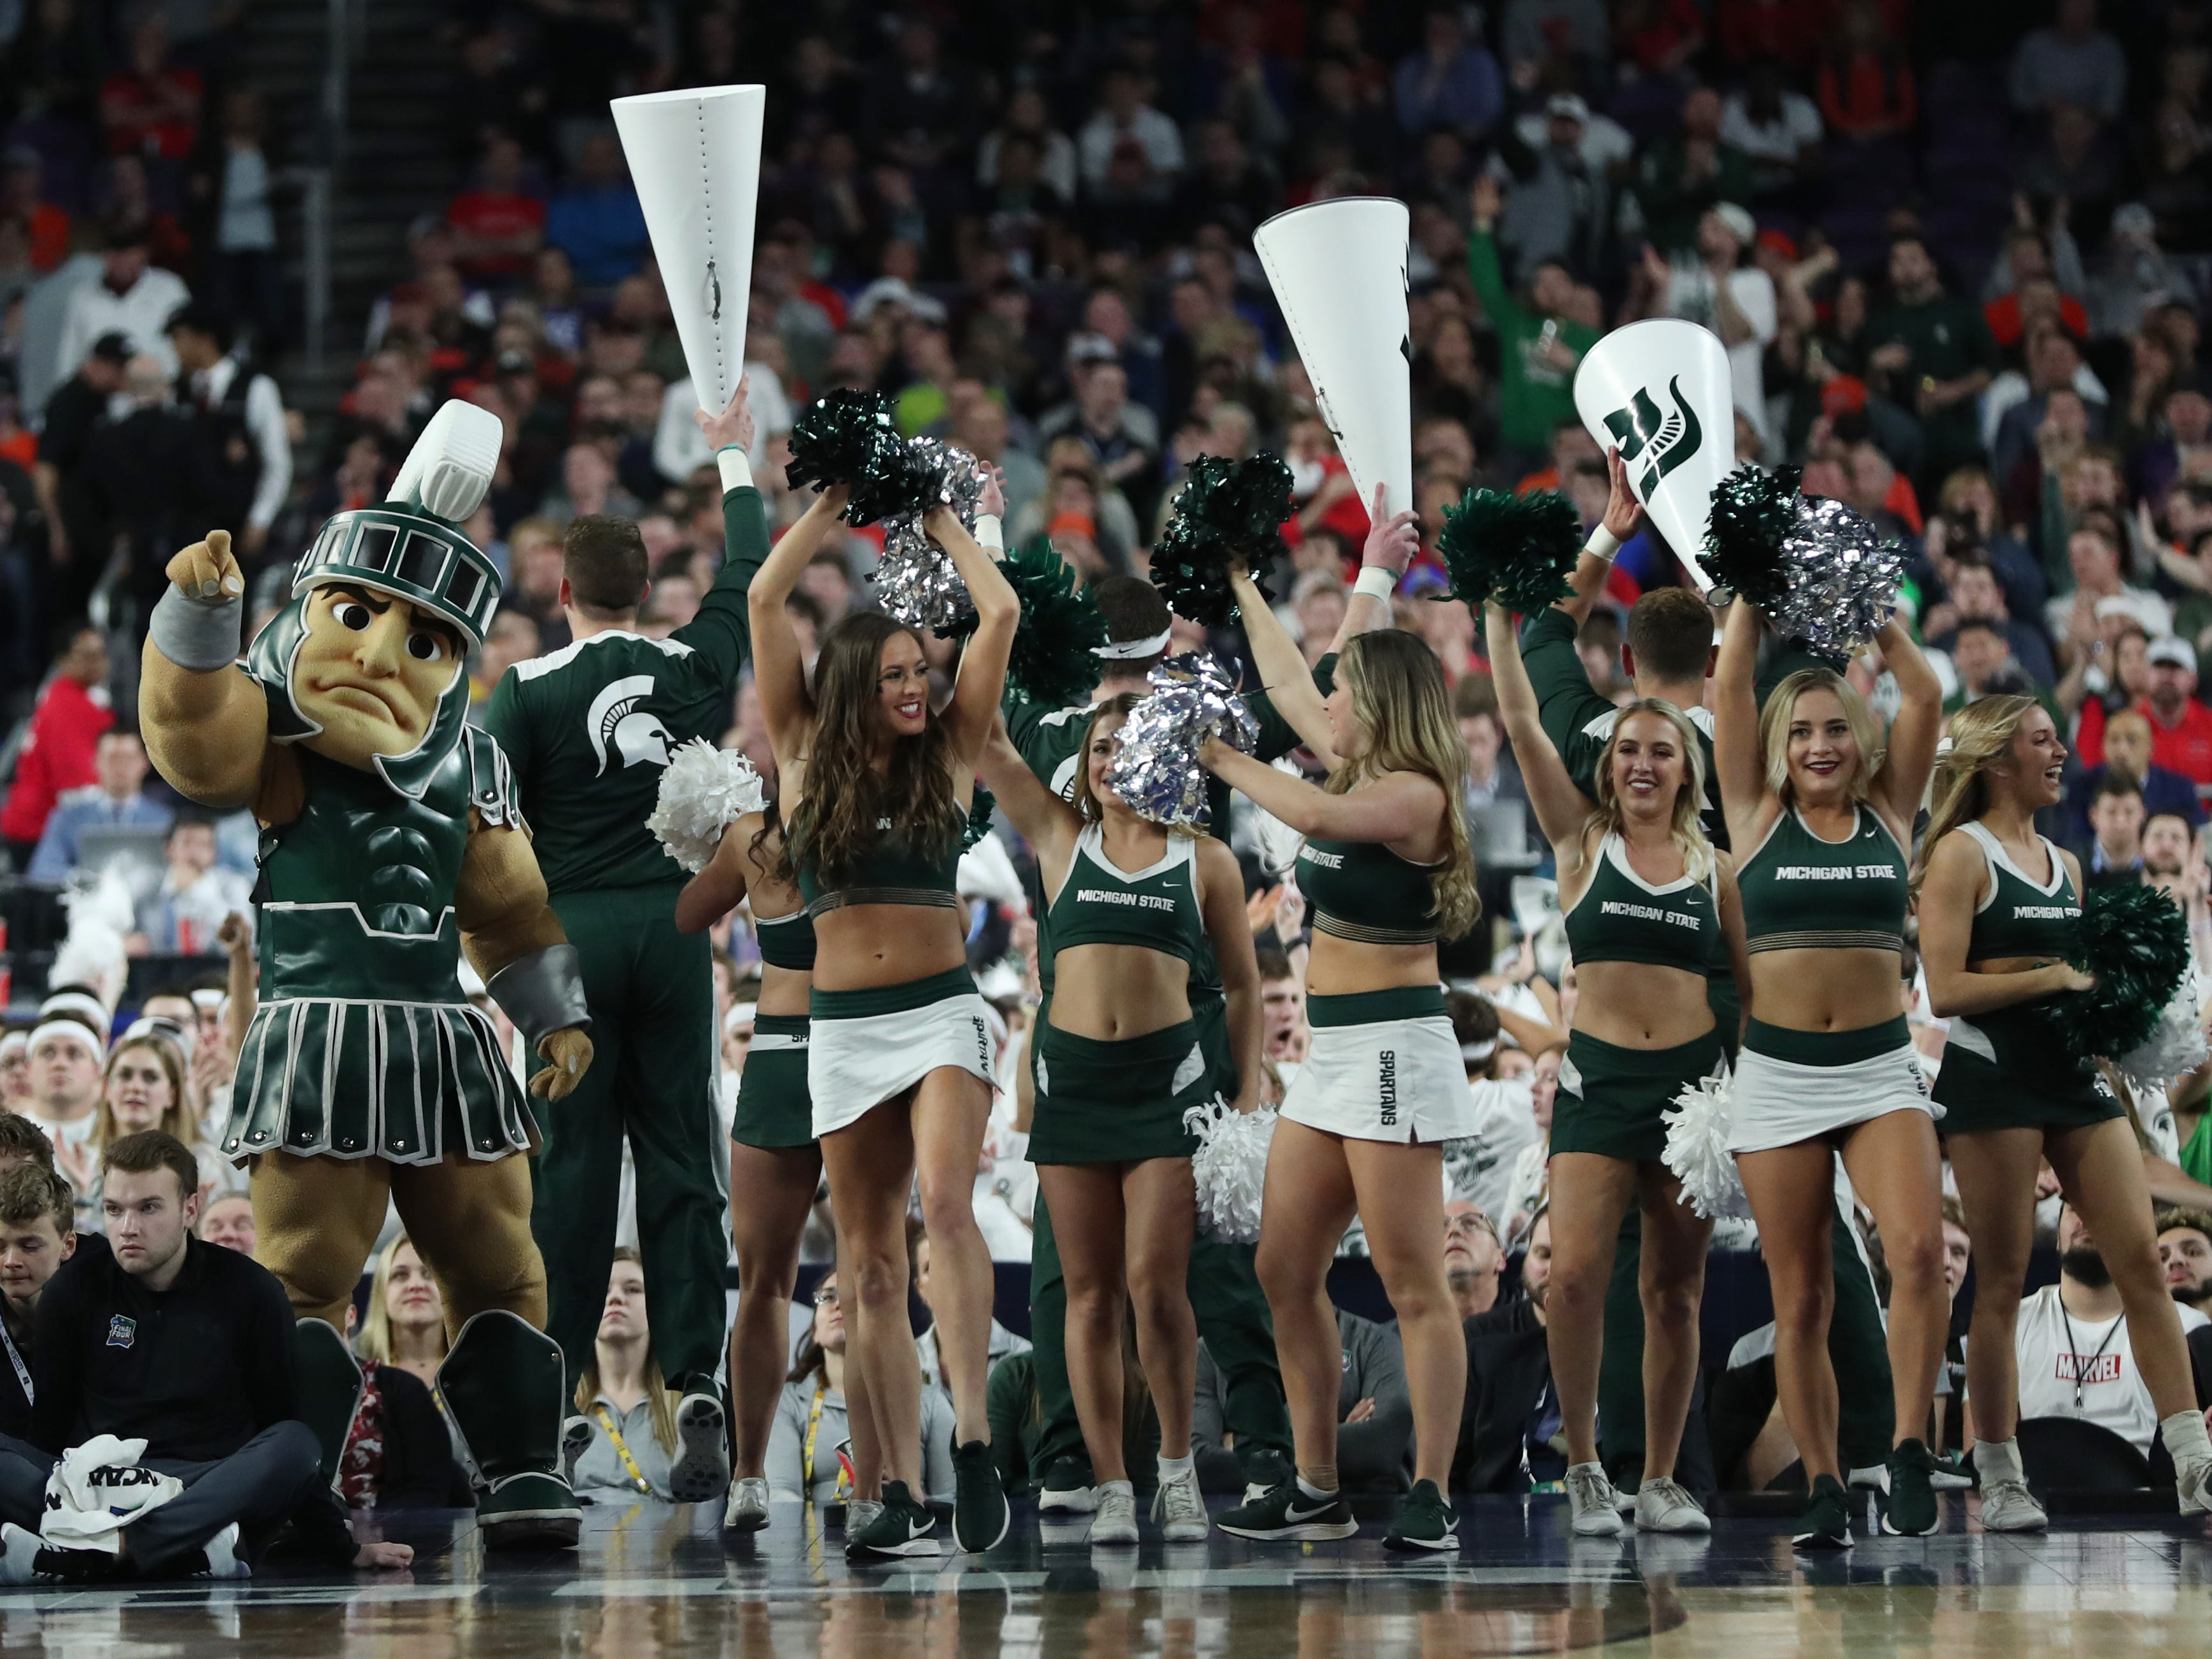 Sparty and the Michigan State cheerleaders in the first half of the Spartans' Final Four game vs. Texas Tech at U.S. Bank Stadium in Minneapolis, Minnesota on Saturday, April 6, 2019.